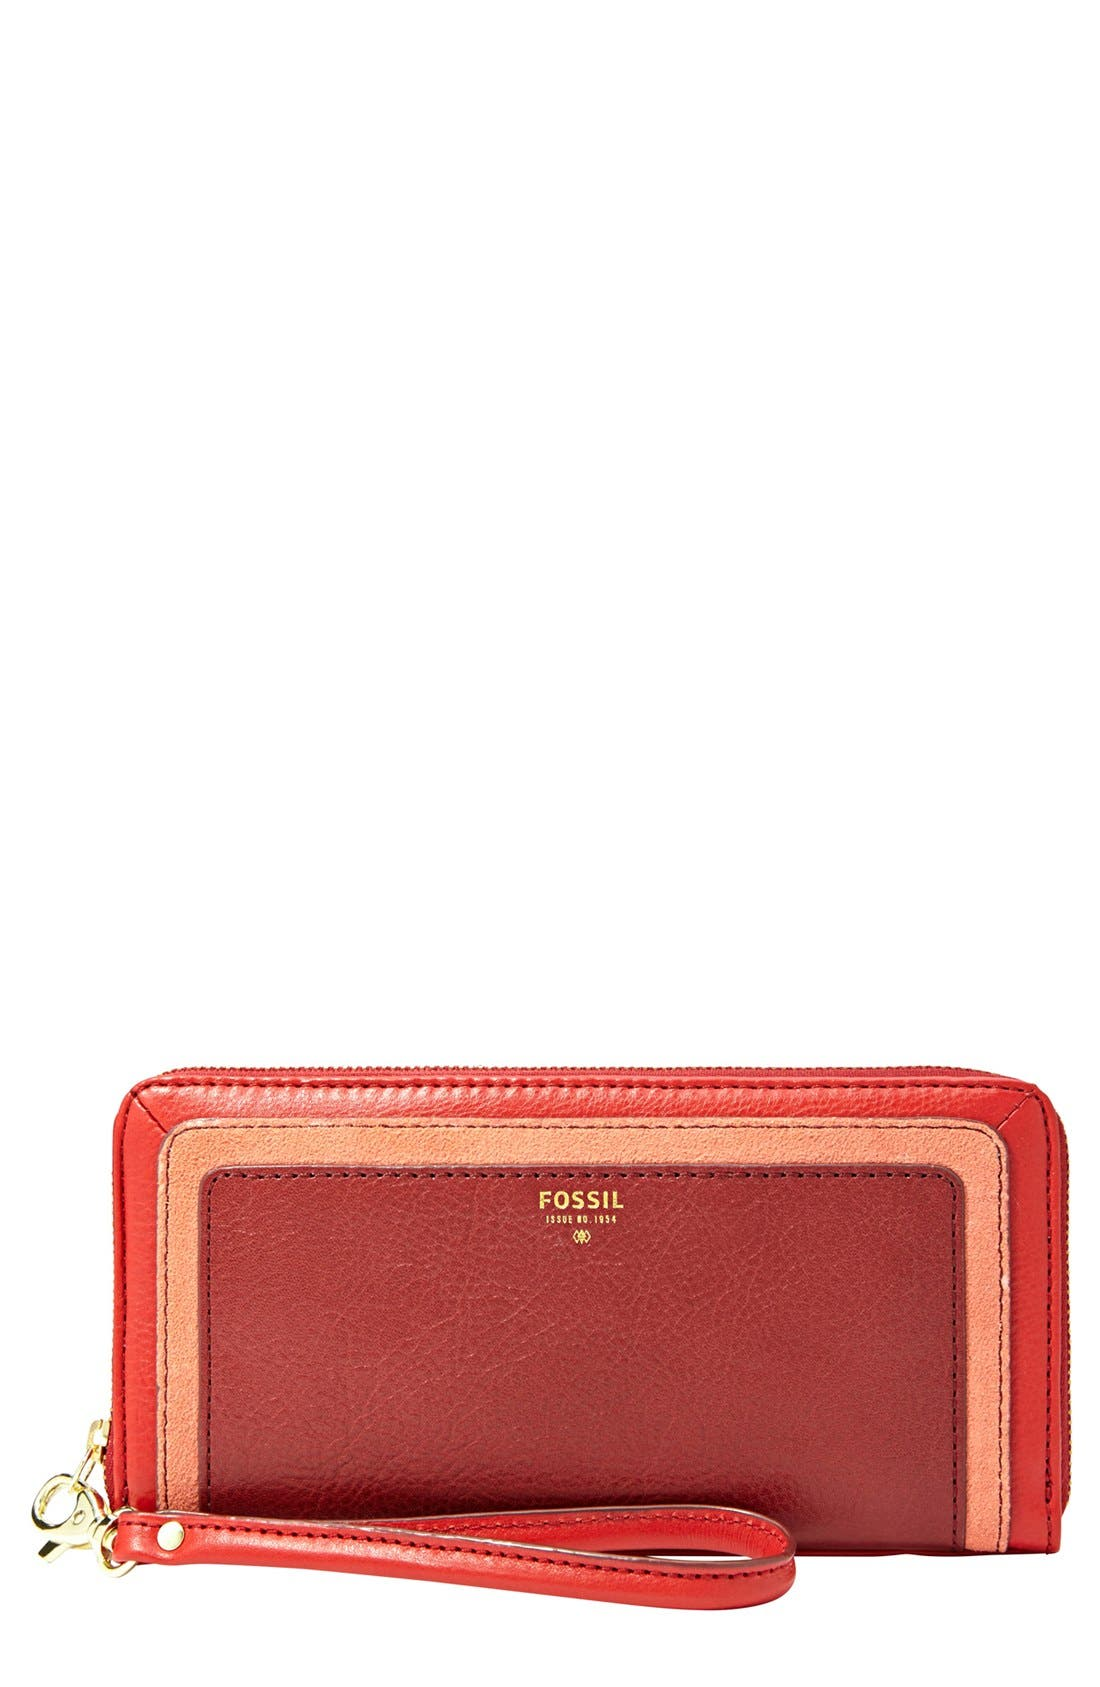 Main Image - Fossil 'Sydney' Colorblock Clutch Wallet